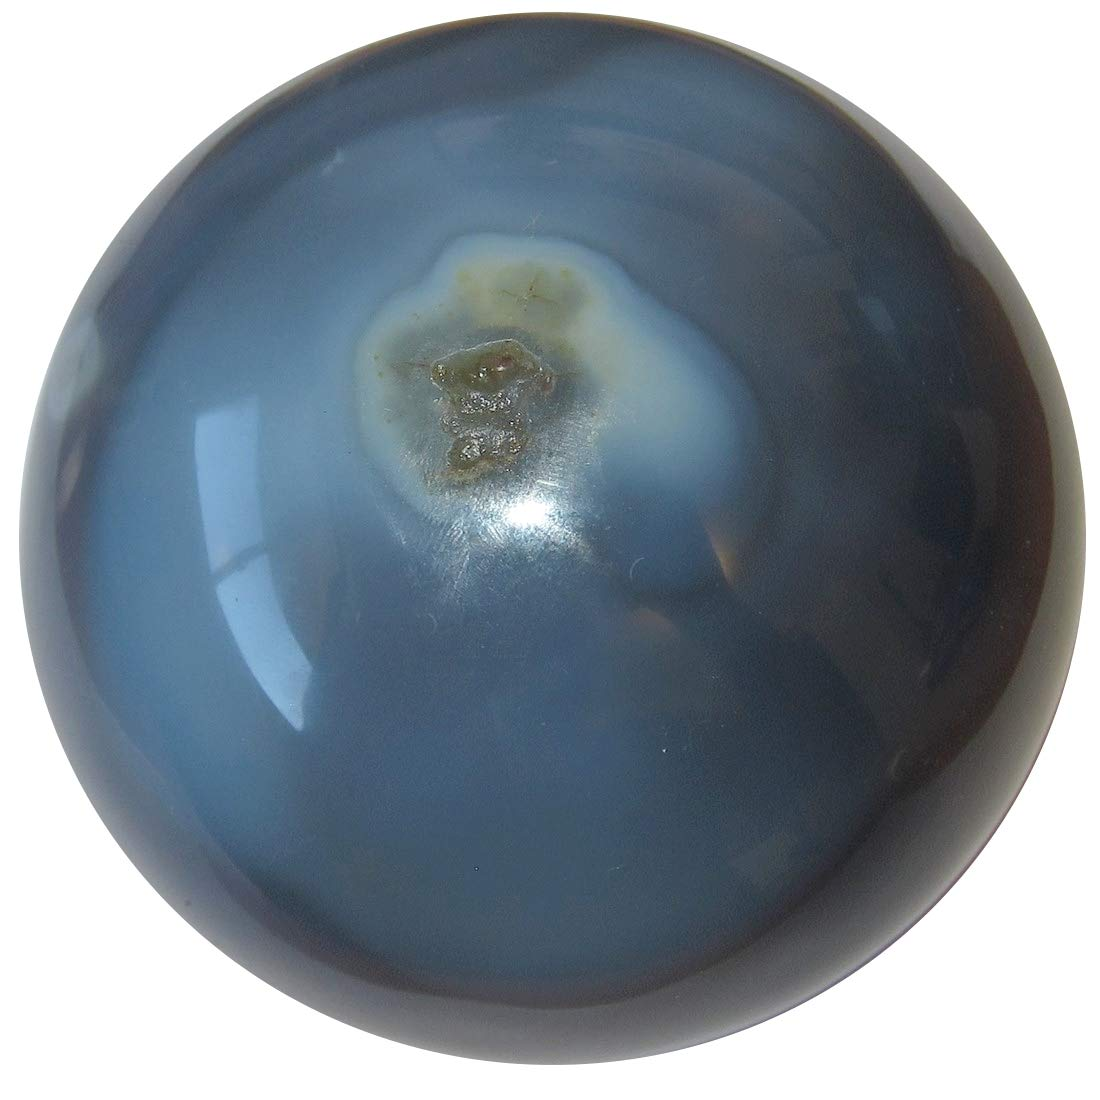 Satin Crystals 3.0 Butterfly Cave SatinCrystals Agate Blue Lace Ball Collectible Rare Find Crystal Sphere Celestial Energy Healing Geode Gem C50